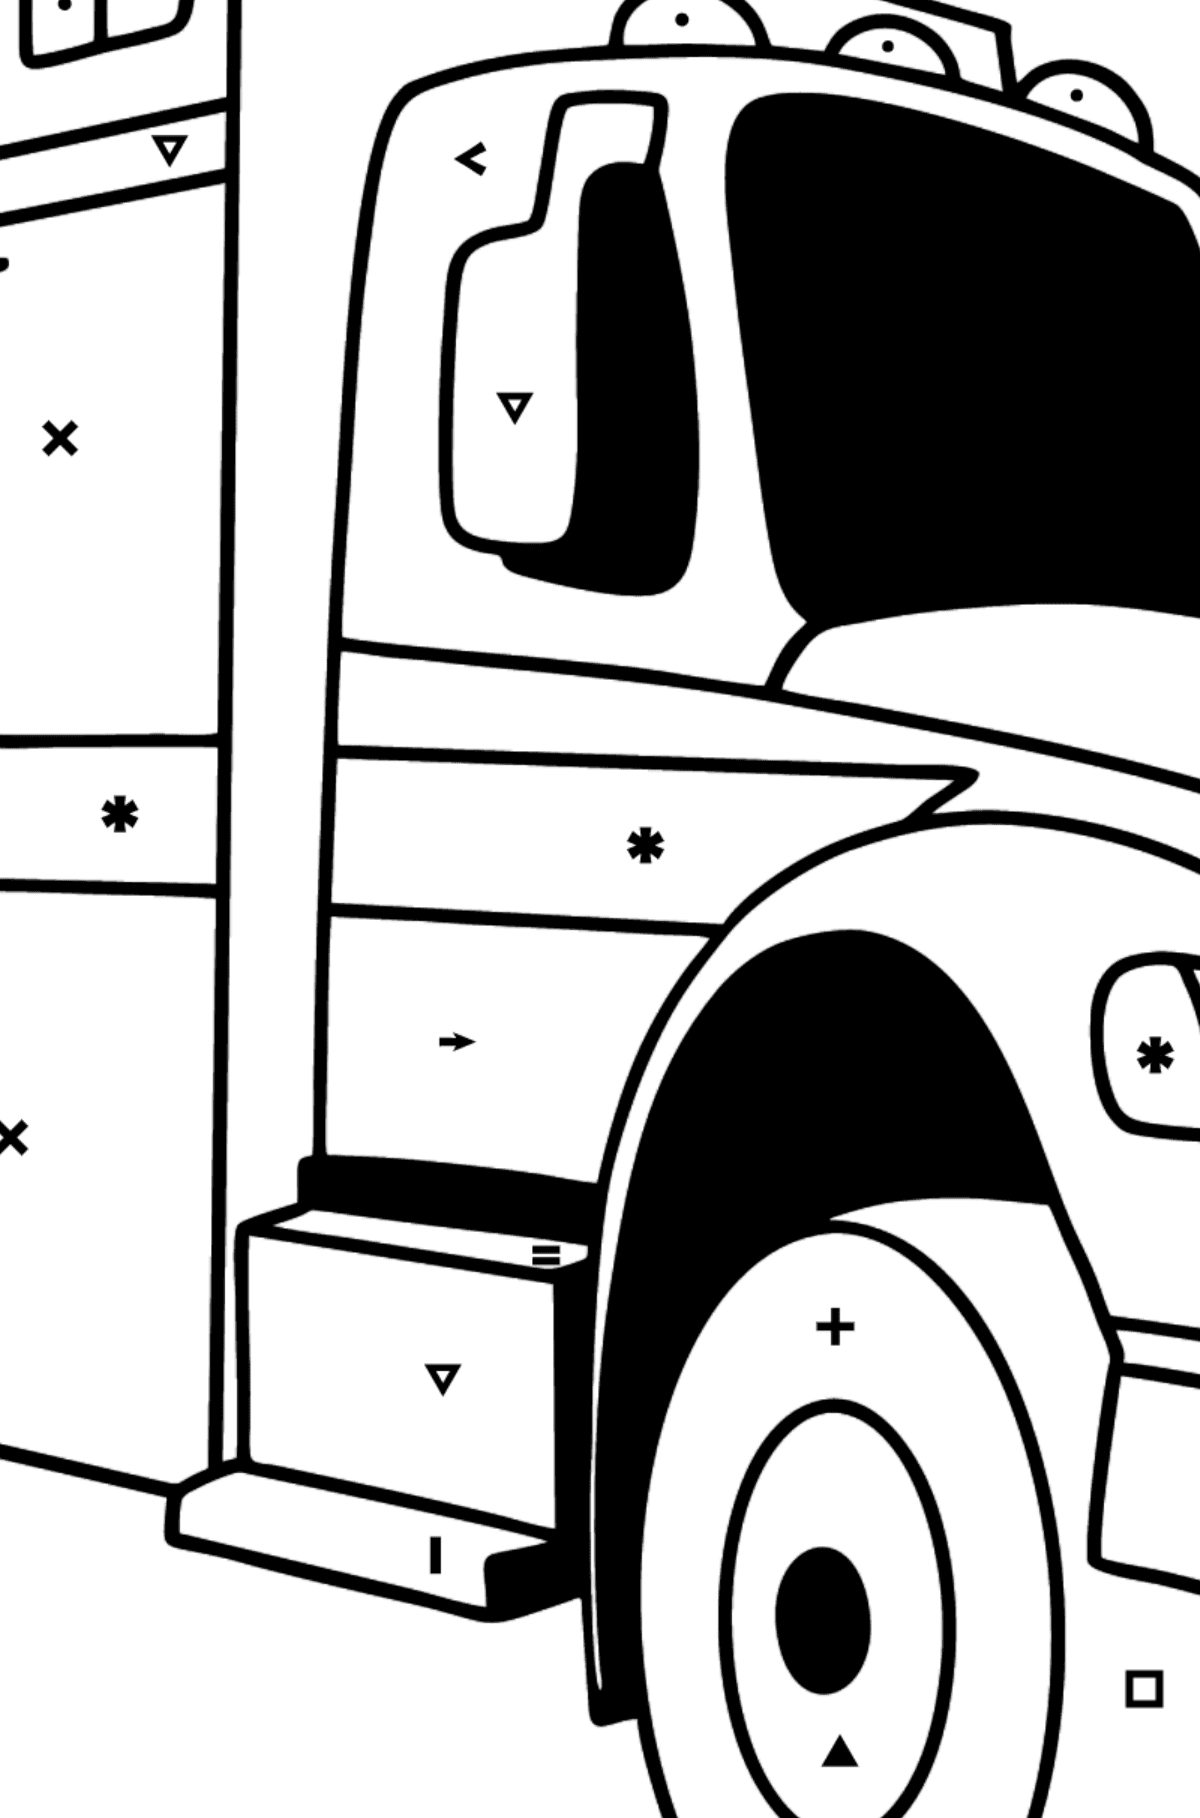 Fire Truck in Argentina coloring page - Coloring by Symbols for Kids